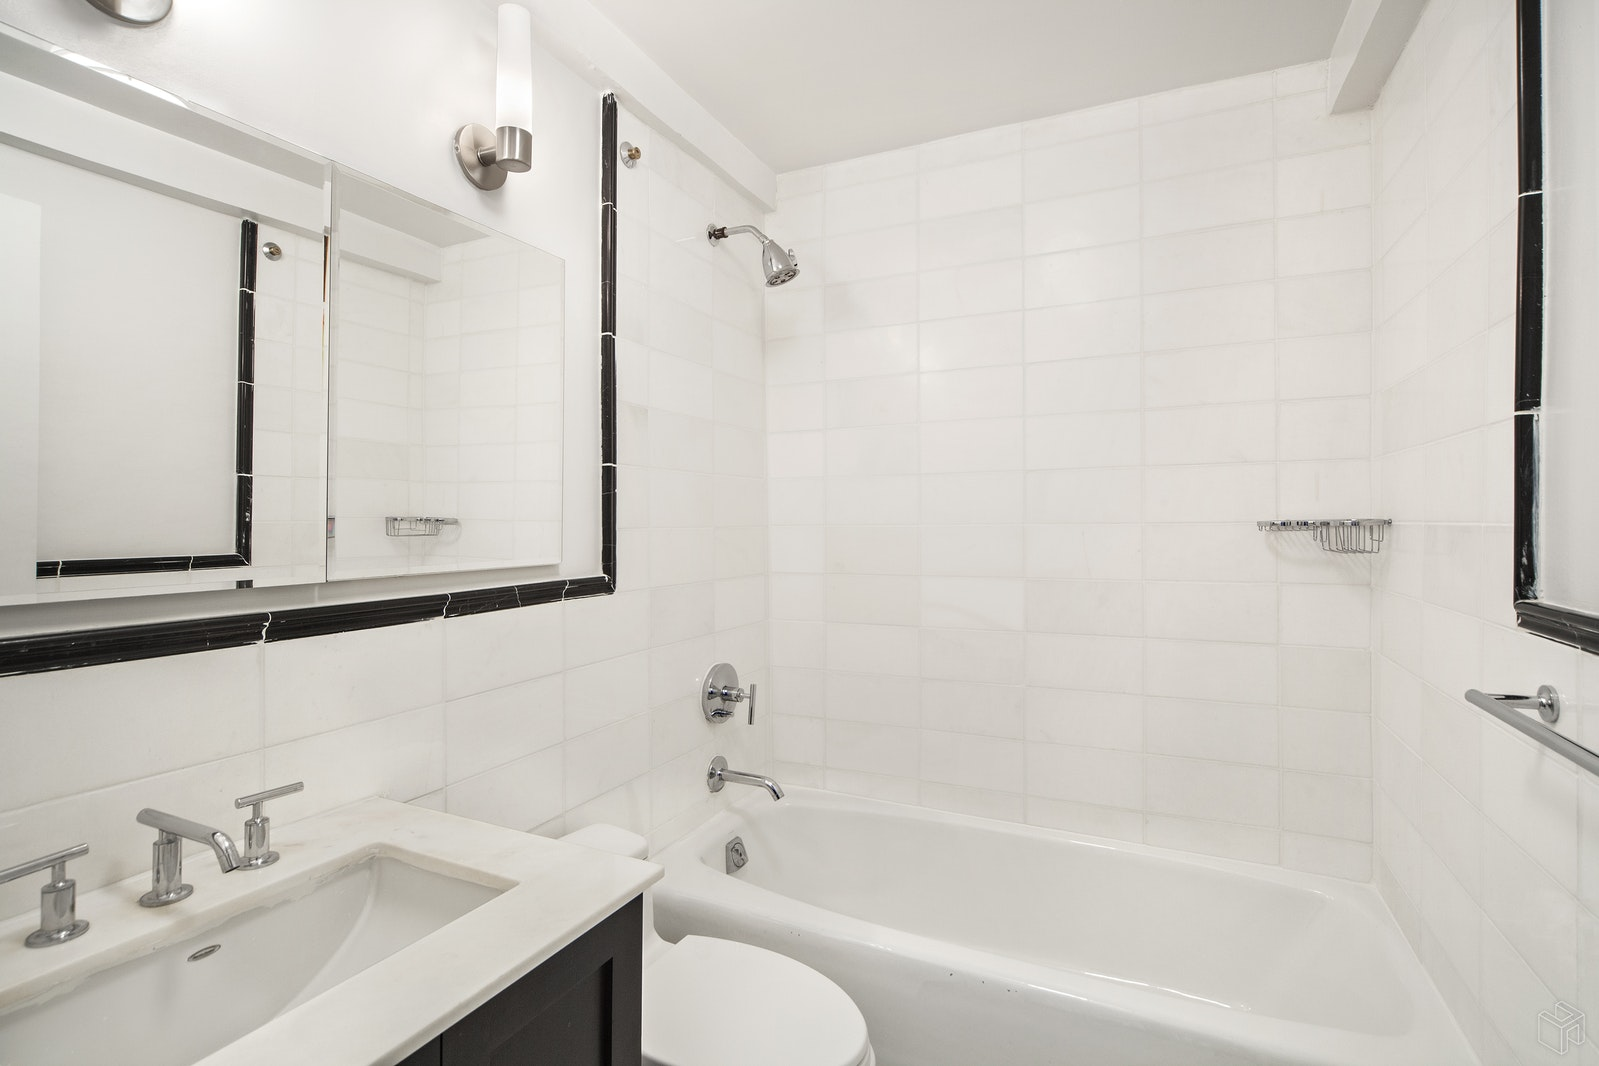 56 Seventh Avenue, West Village, NYC, 10011, Price Not Disclosed, Rented Property, Halstead Real Estate, Photo 4